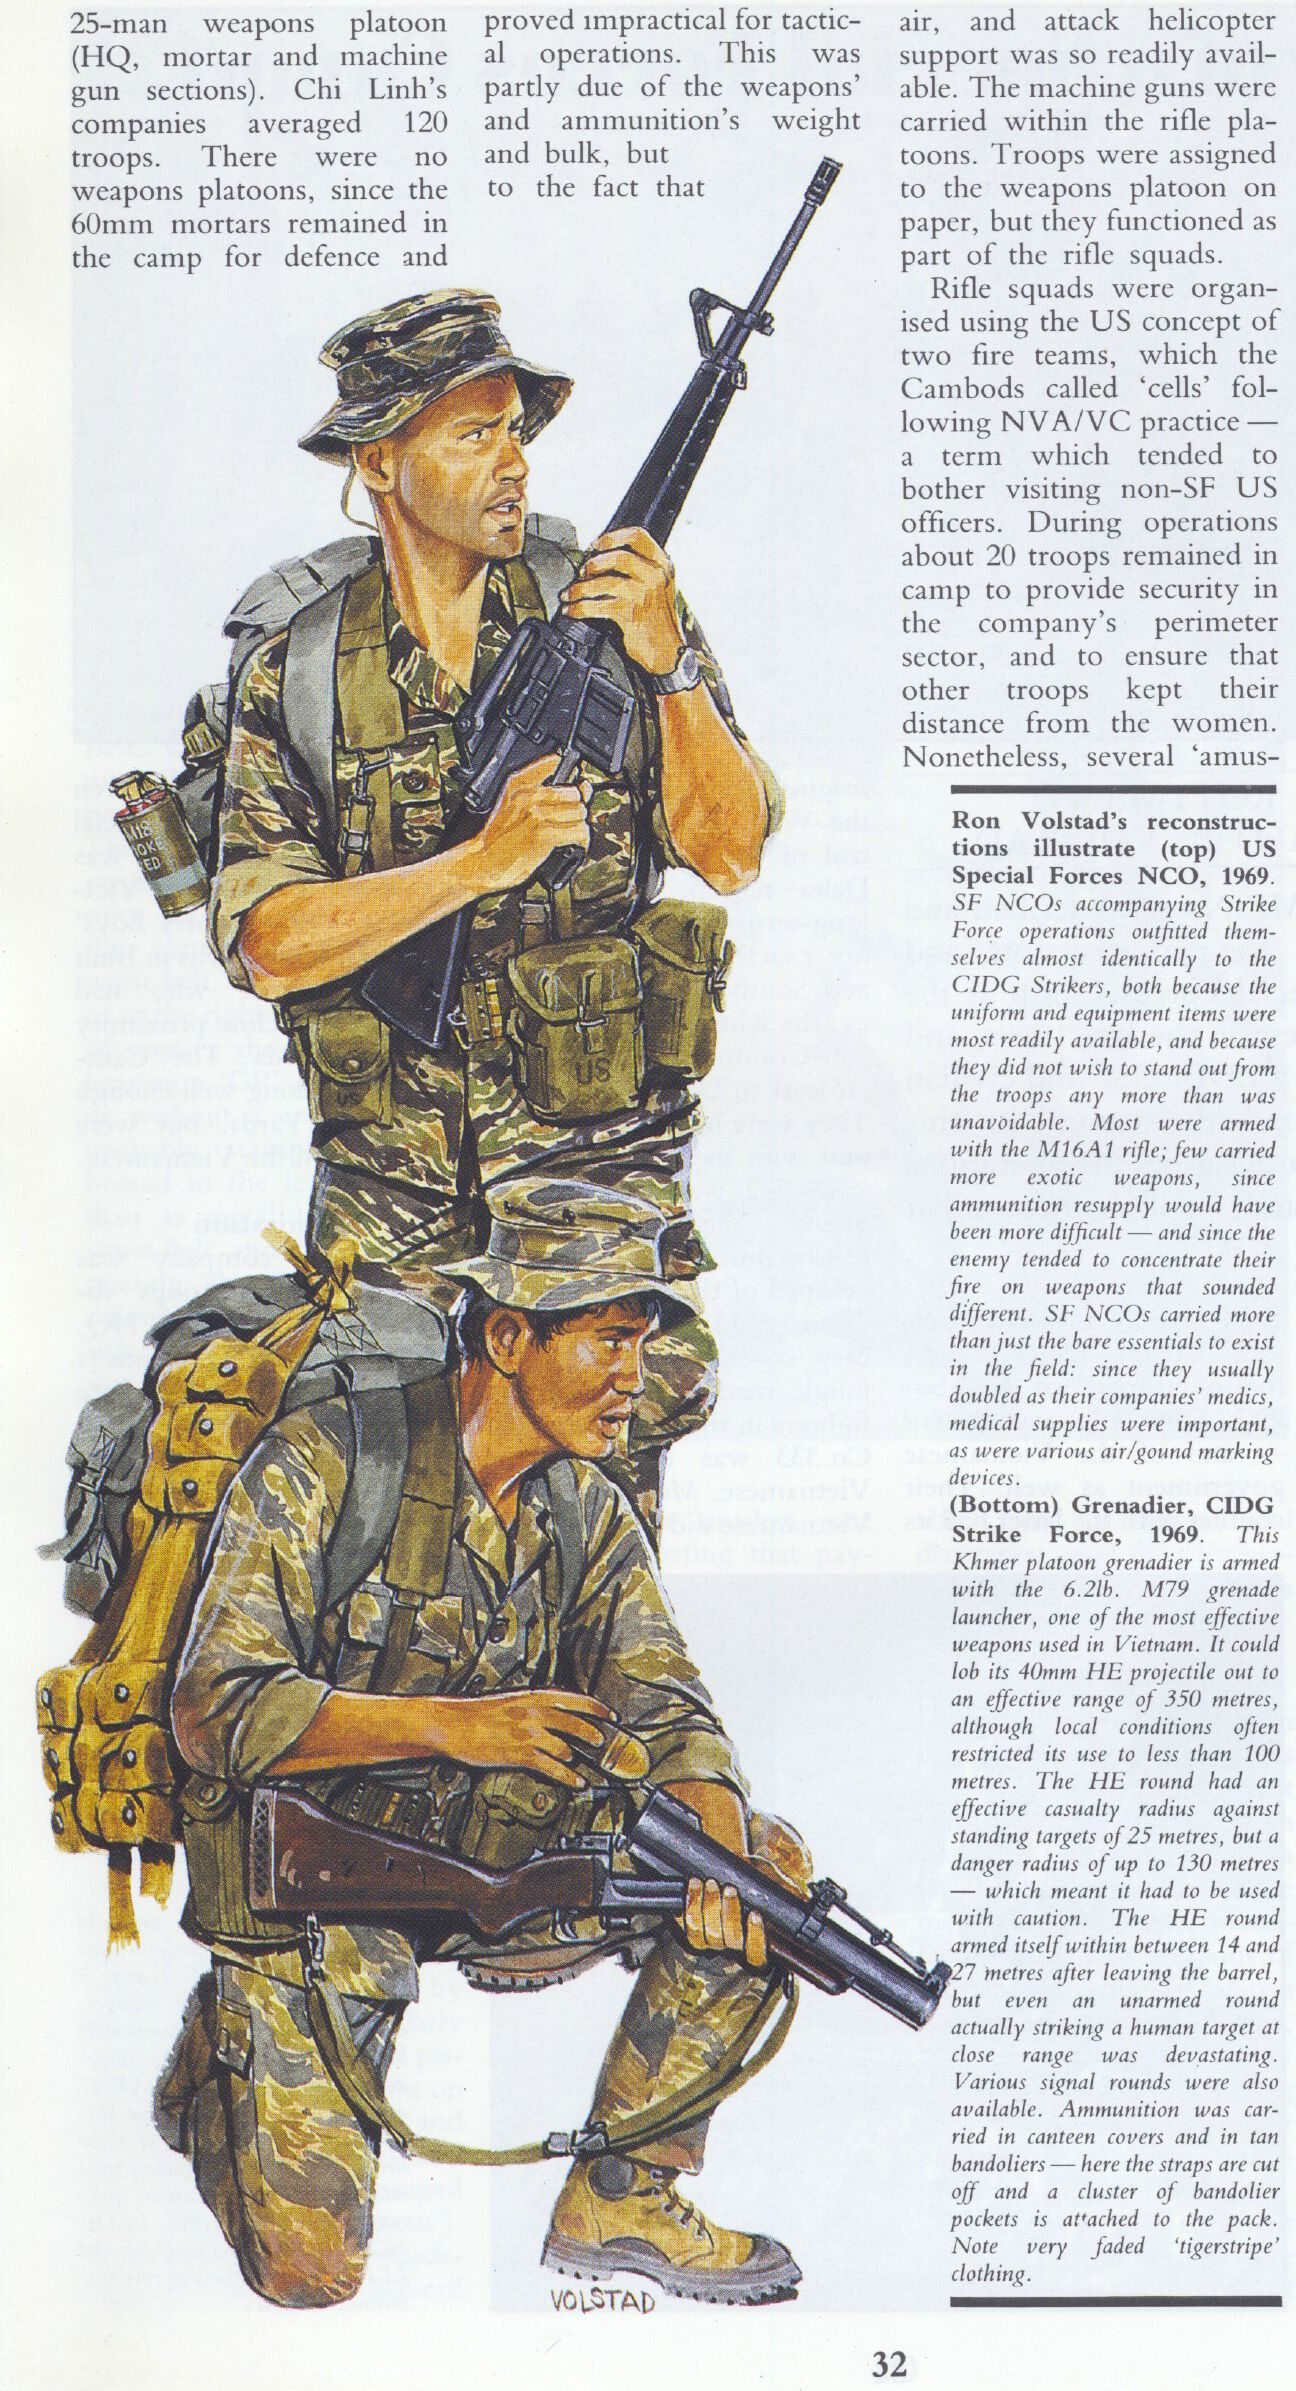 MilitaryIllustrated 1987-12-1988-01 (10)-3.jpg